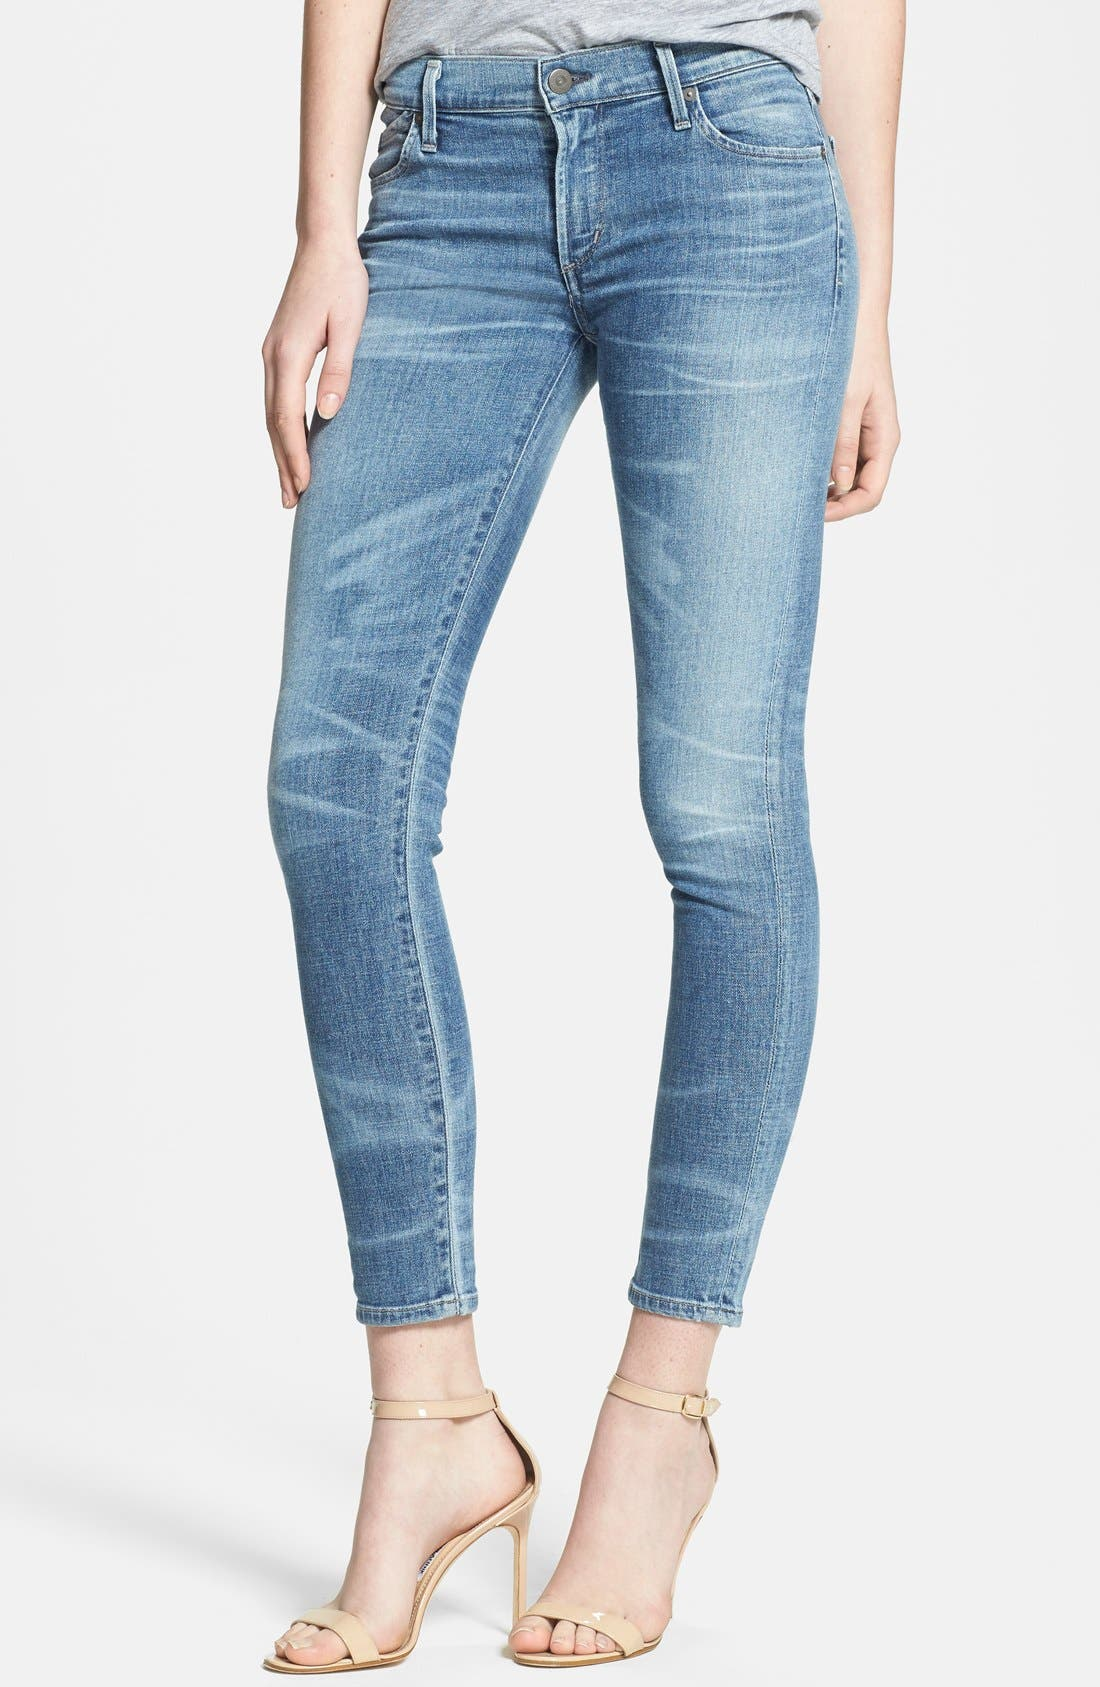 Alternate Image 1 Selected - Citizens of Humanity Whiskered Skinny Ankle Jeans (Belize)